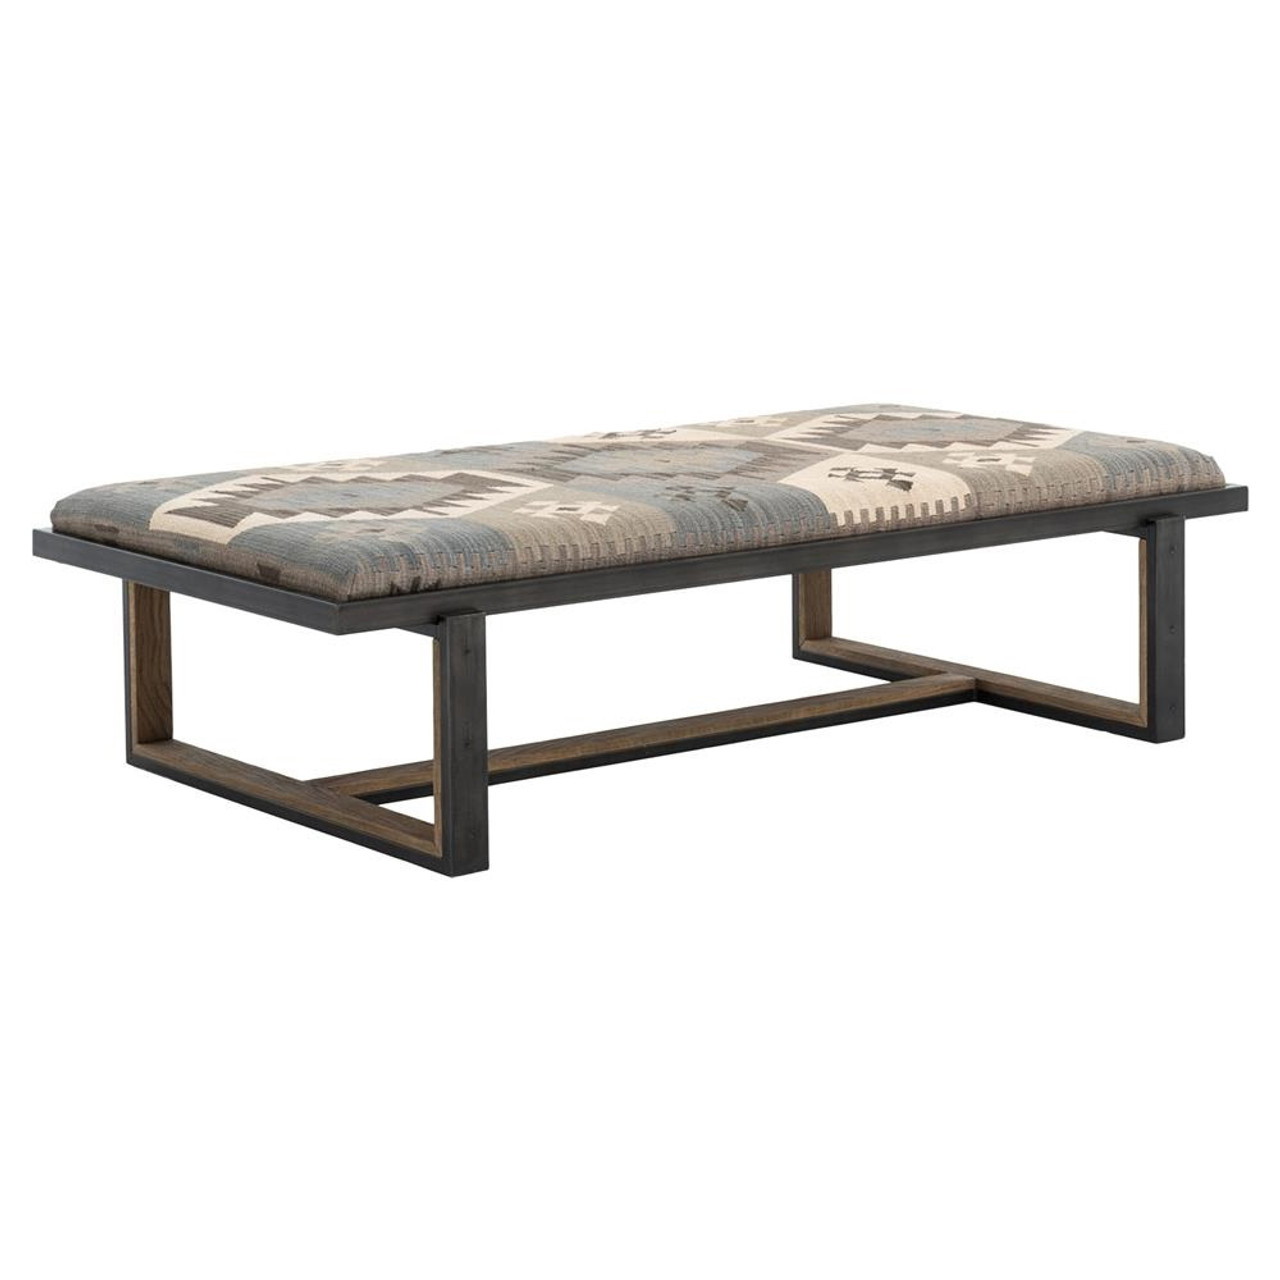 Eclectic iron and kilim upholstered coffee table ottoman zin home eclectic  iron and kilim upholstered coffee